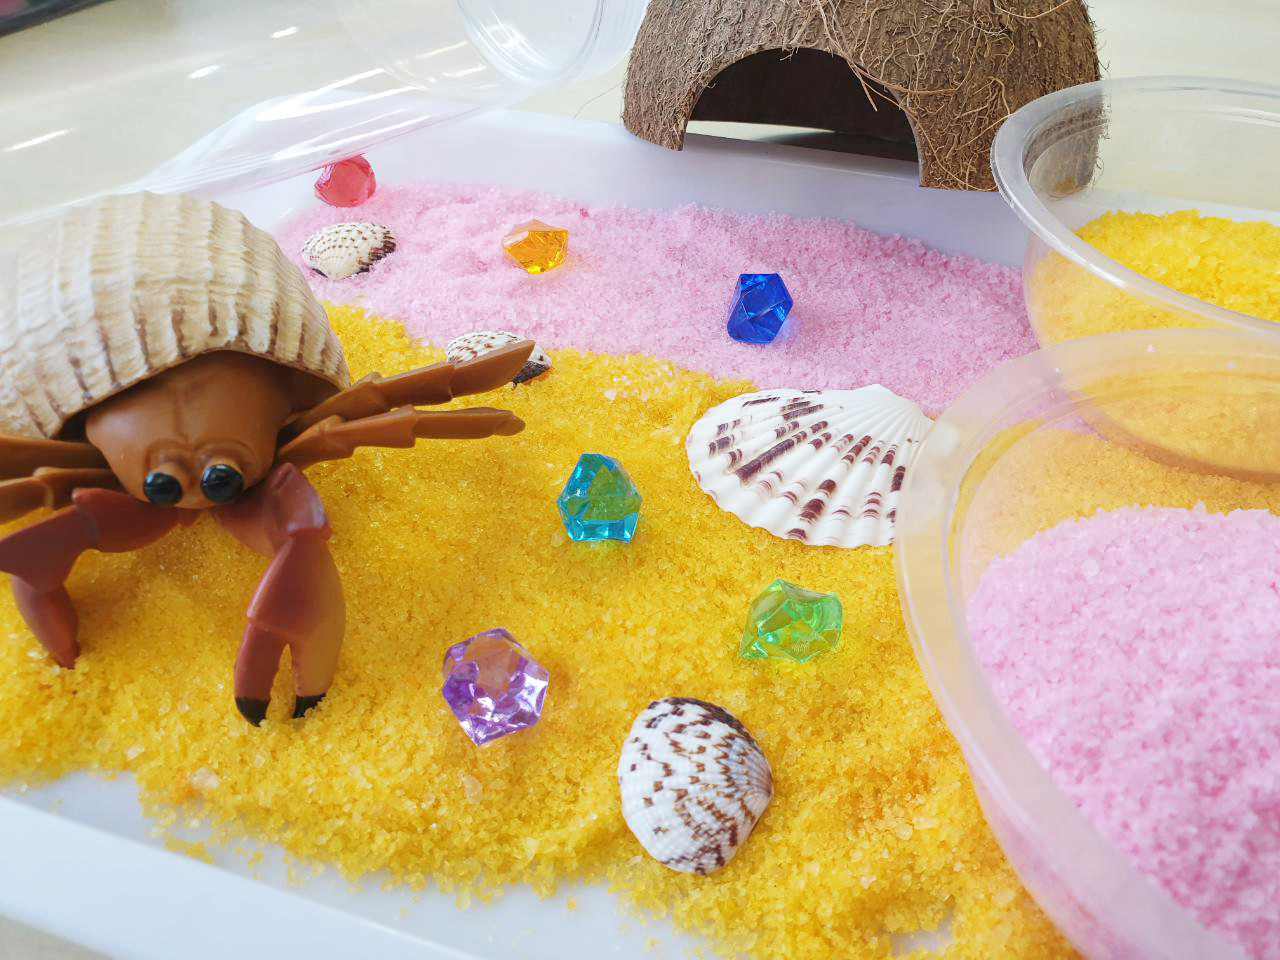 'A house for hermit crab' inspired Premium Multi-sensory Kit